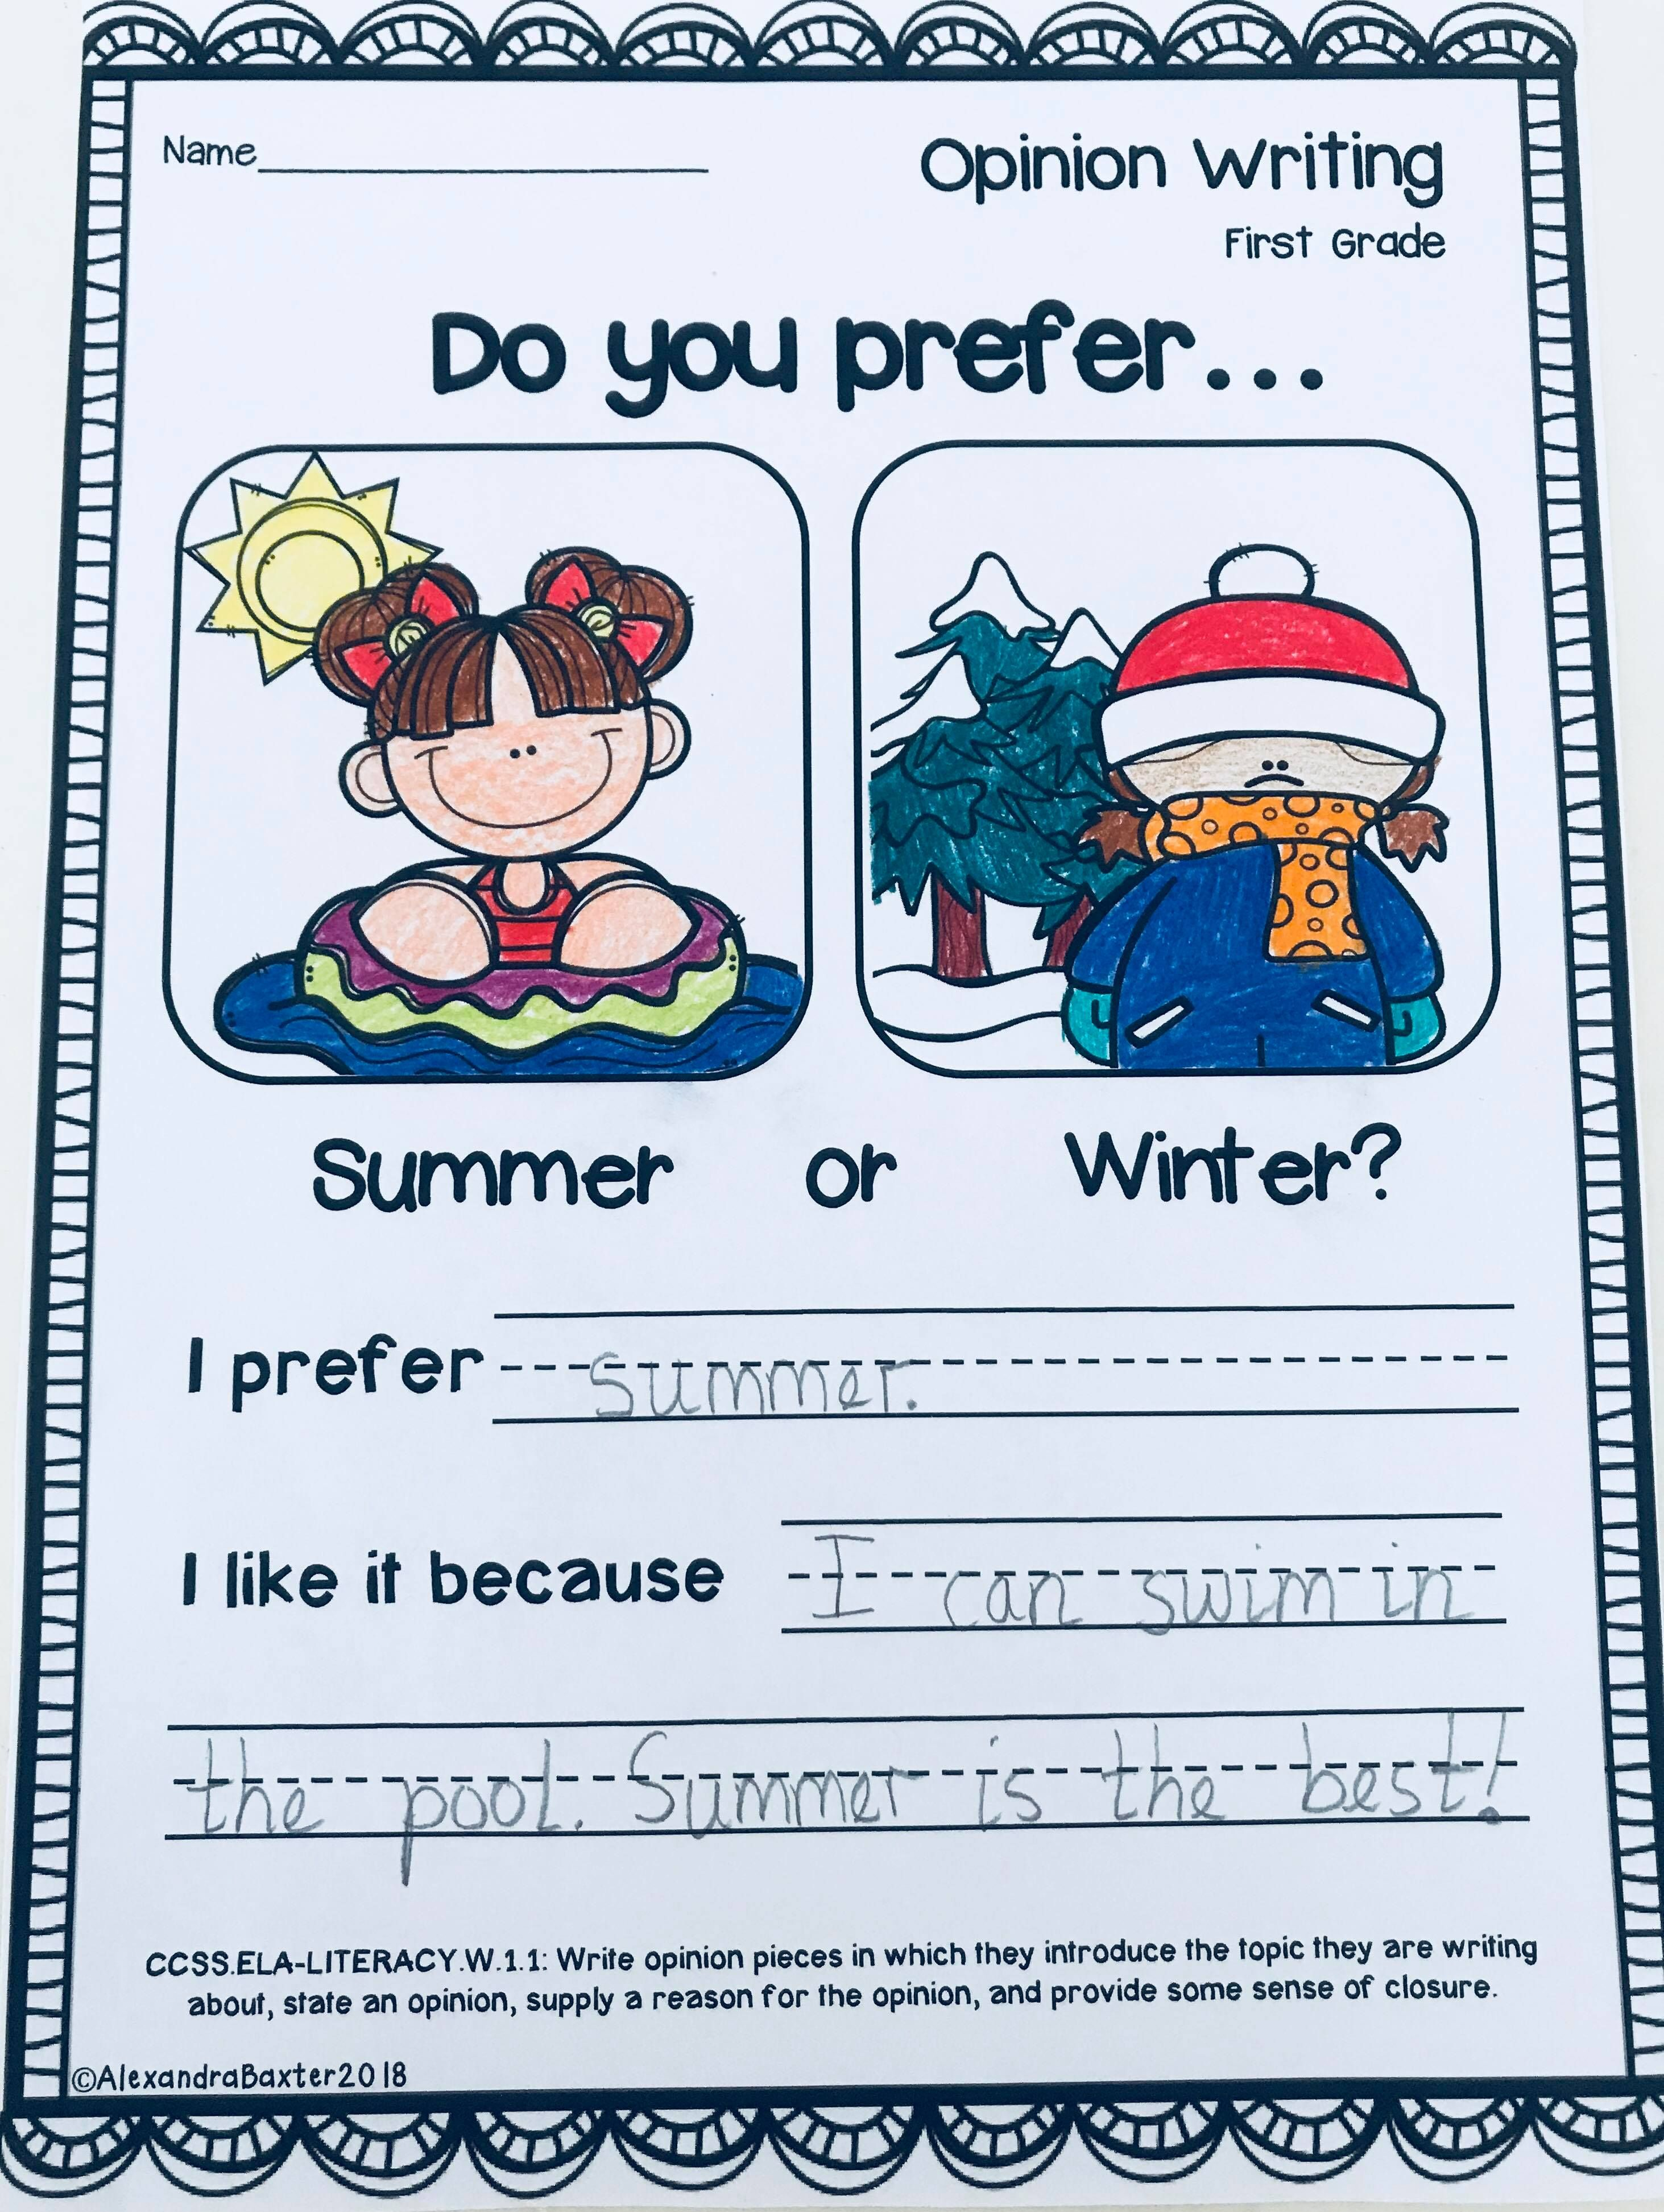 First Grade Opinion Writing Prompts Worksheets